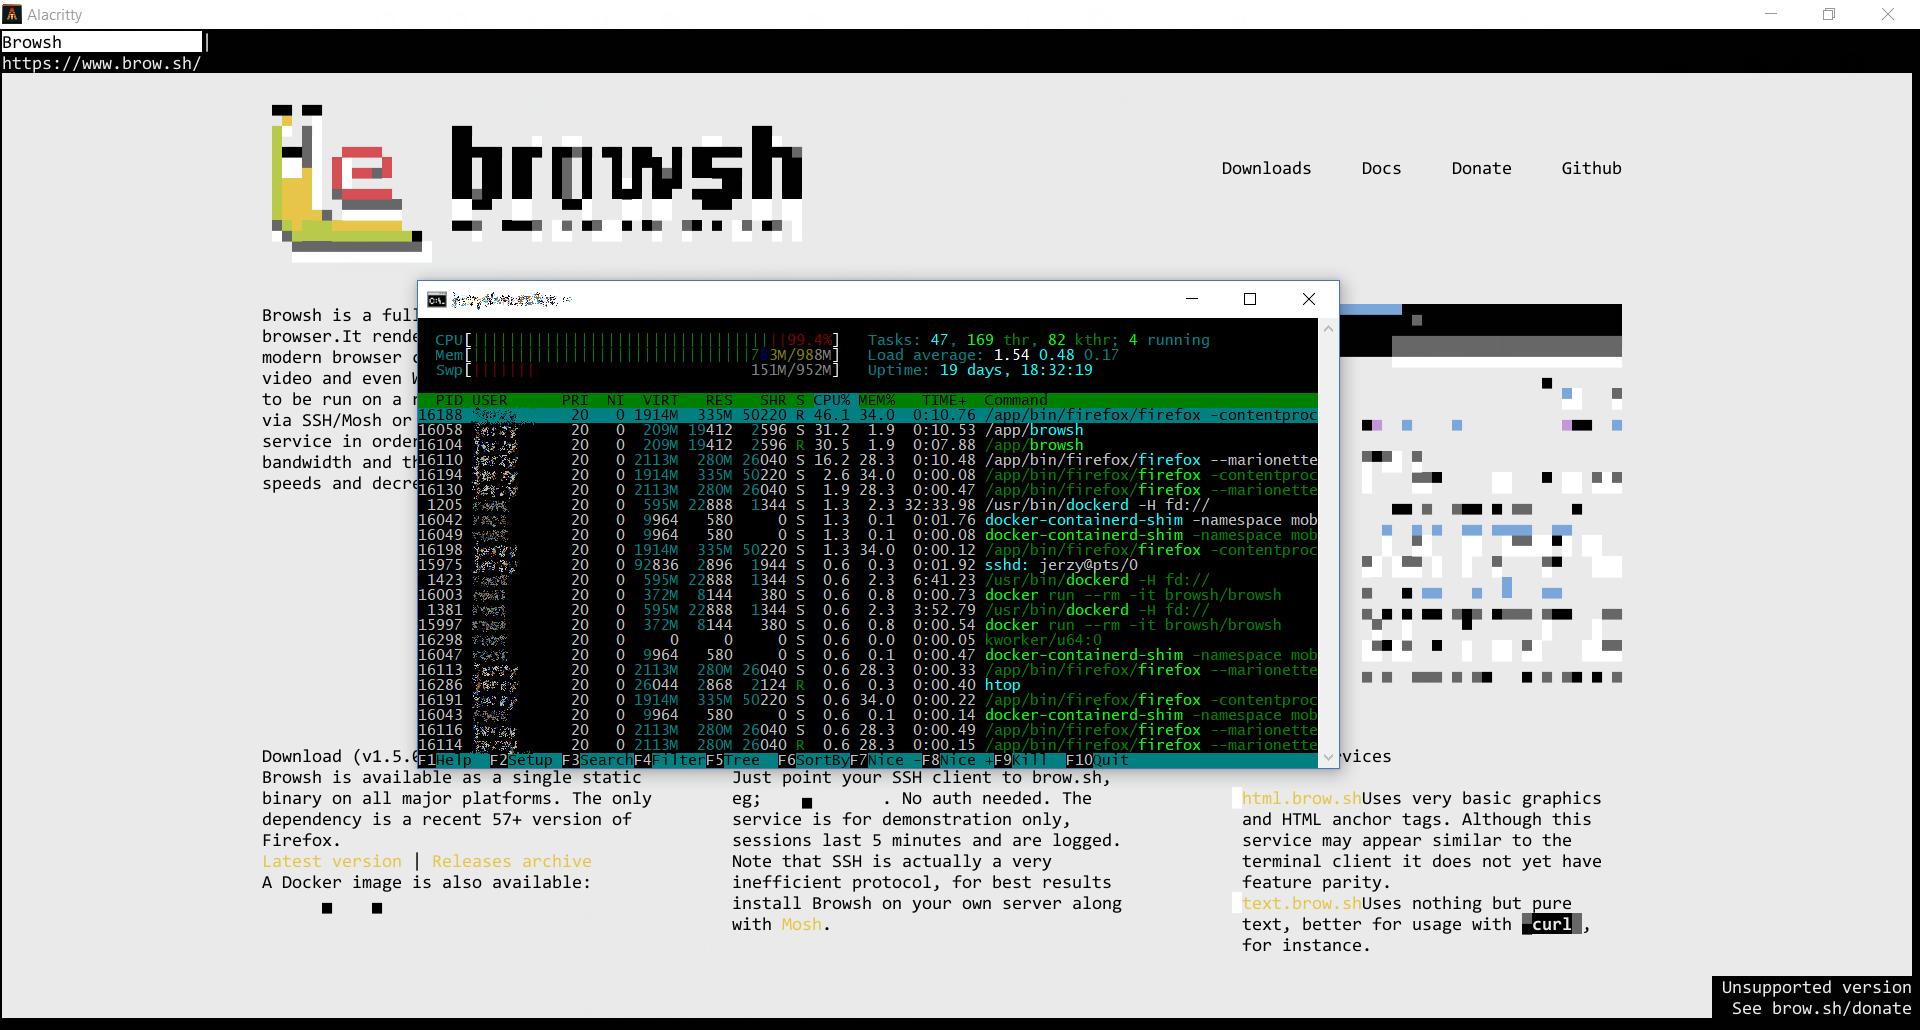 Slow performance, high CPU usage · Issue #144 · browsh-org/browsh